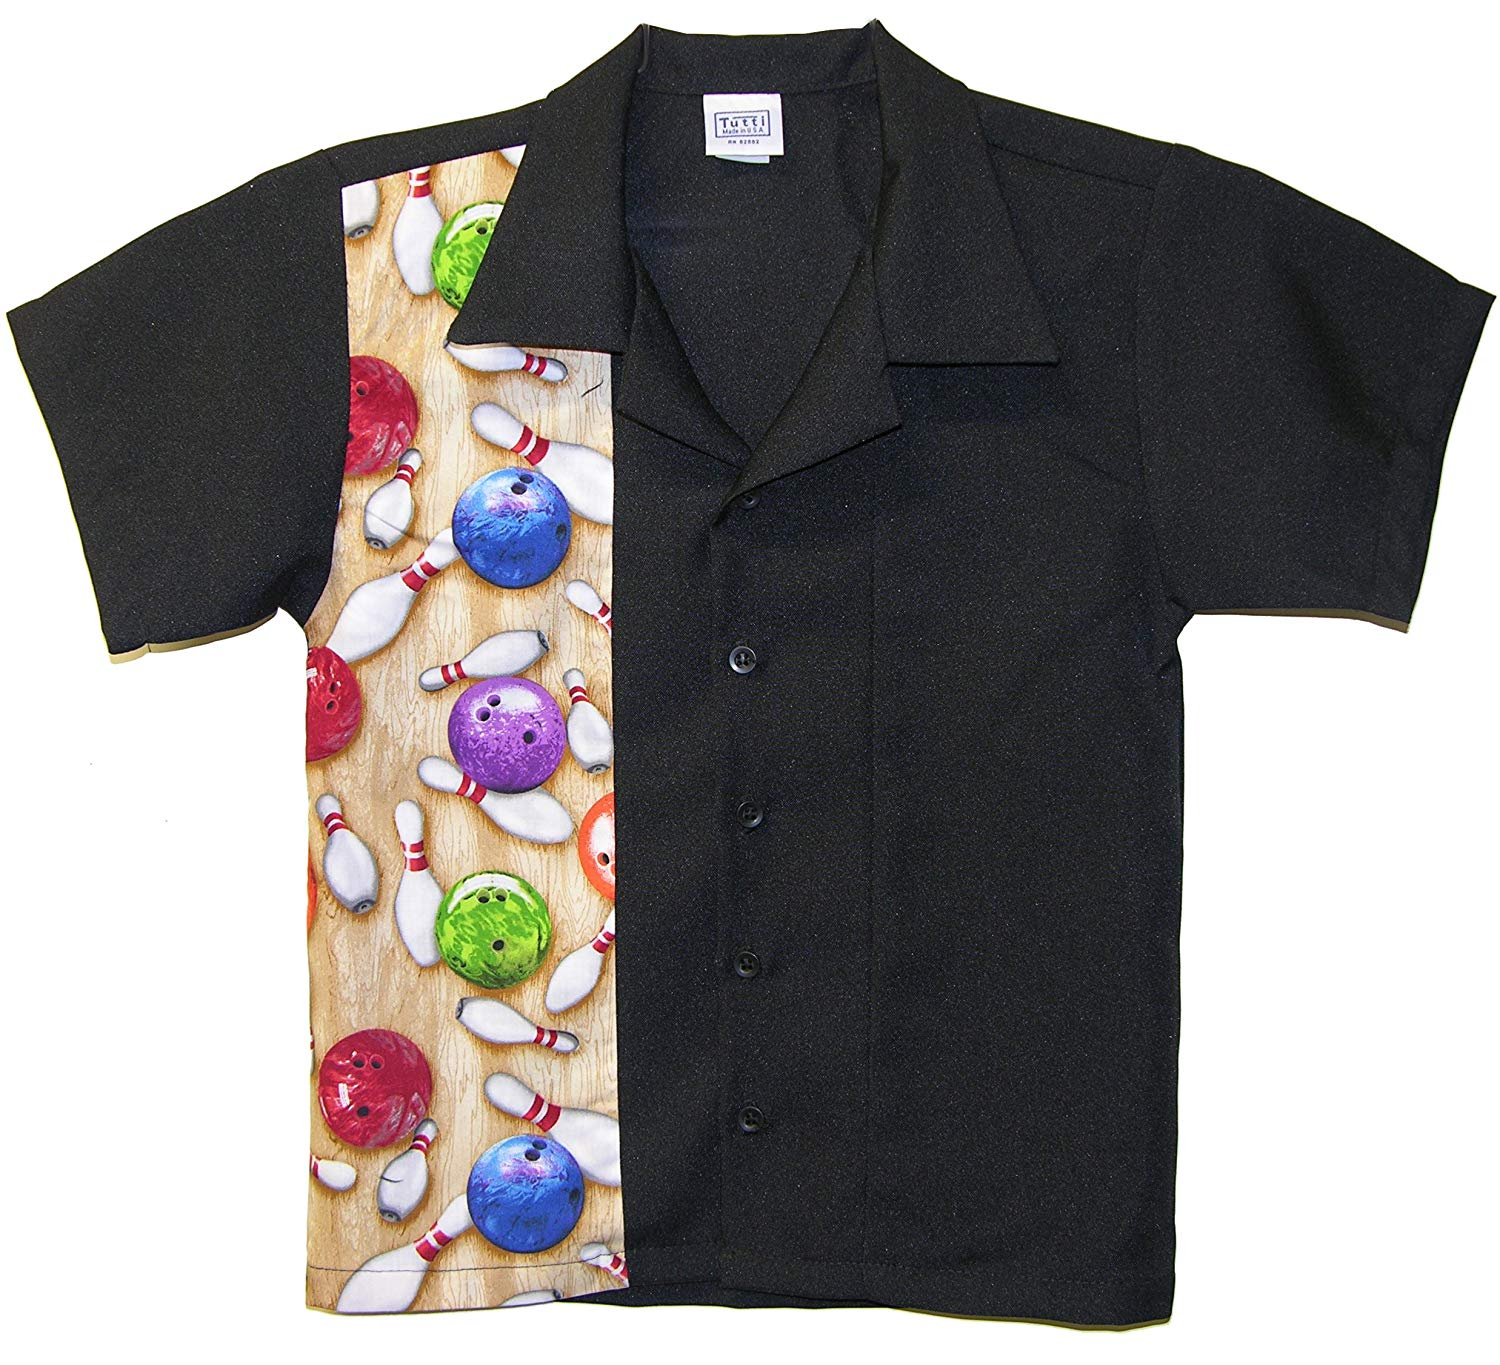 fa8ca673496 Get Quotations · Tutti Kids Bowling Shirt Child Sizes with Bowling Balls  and Pins Design